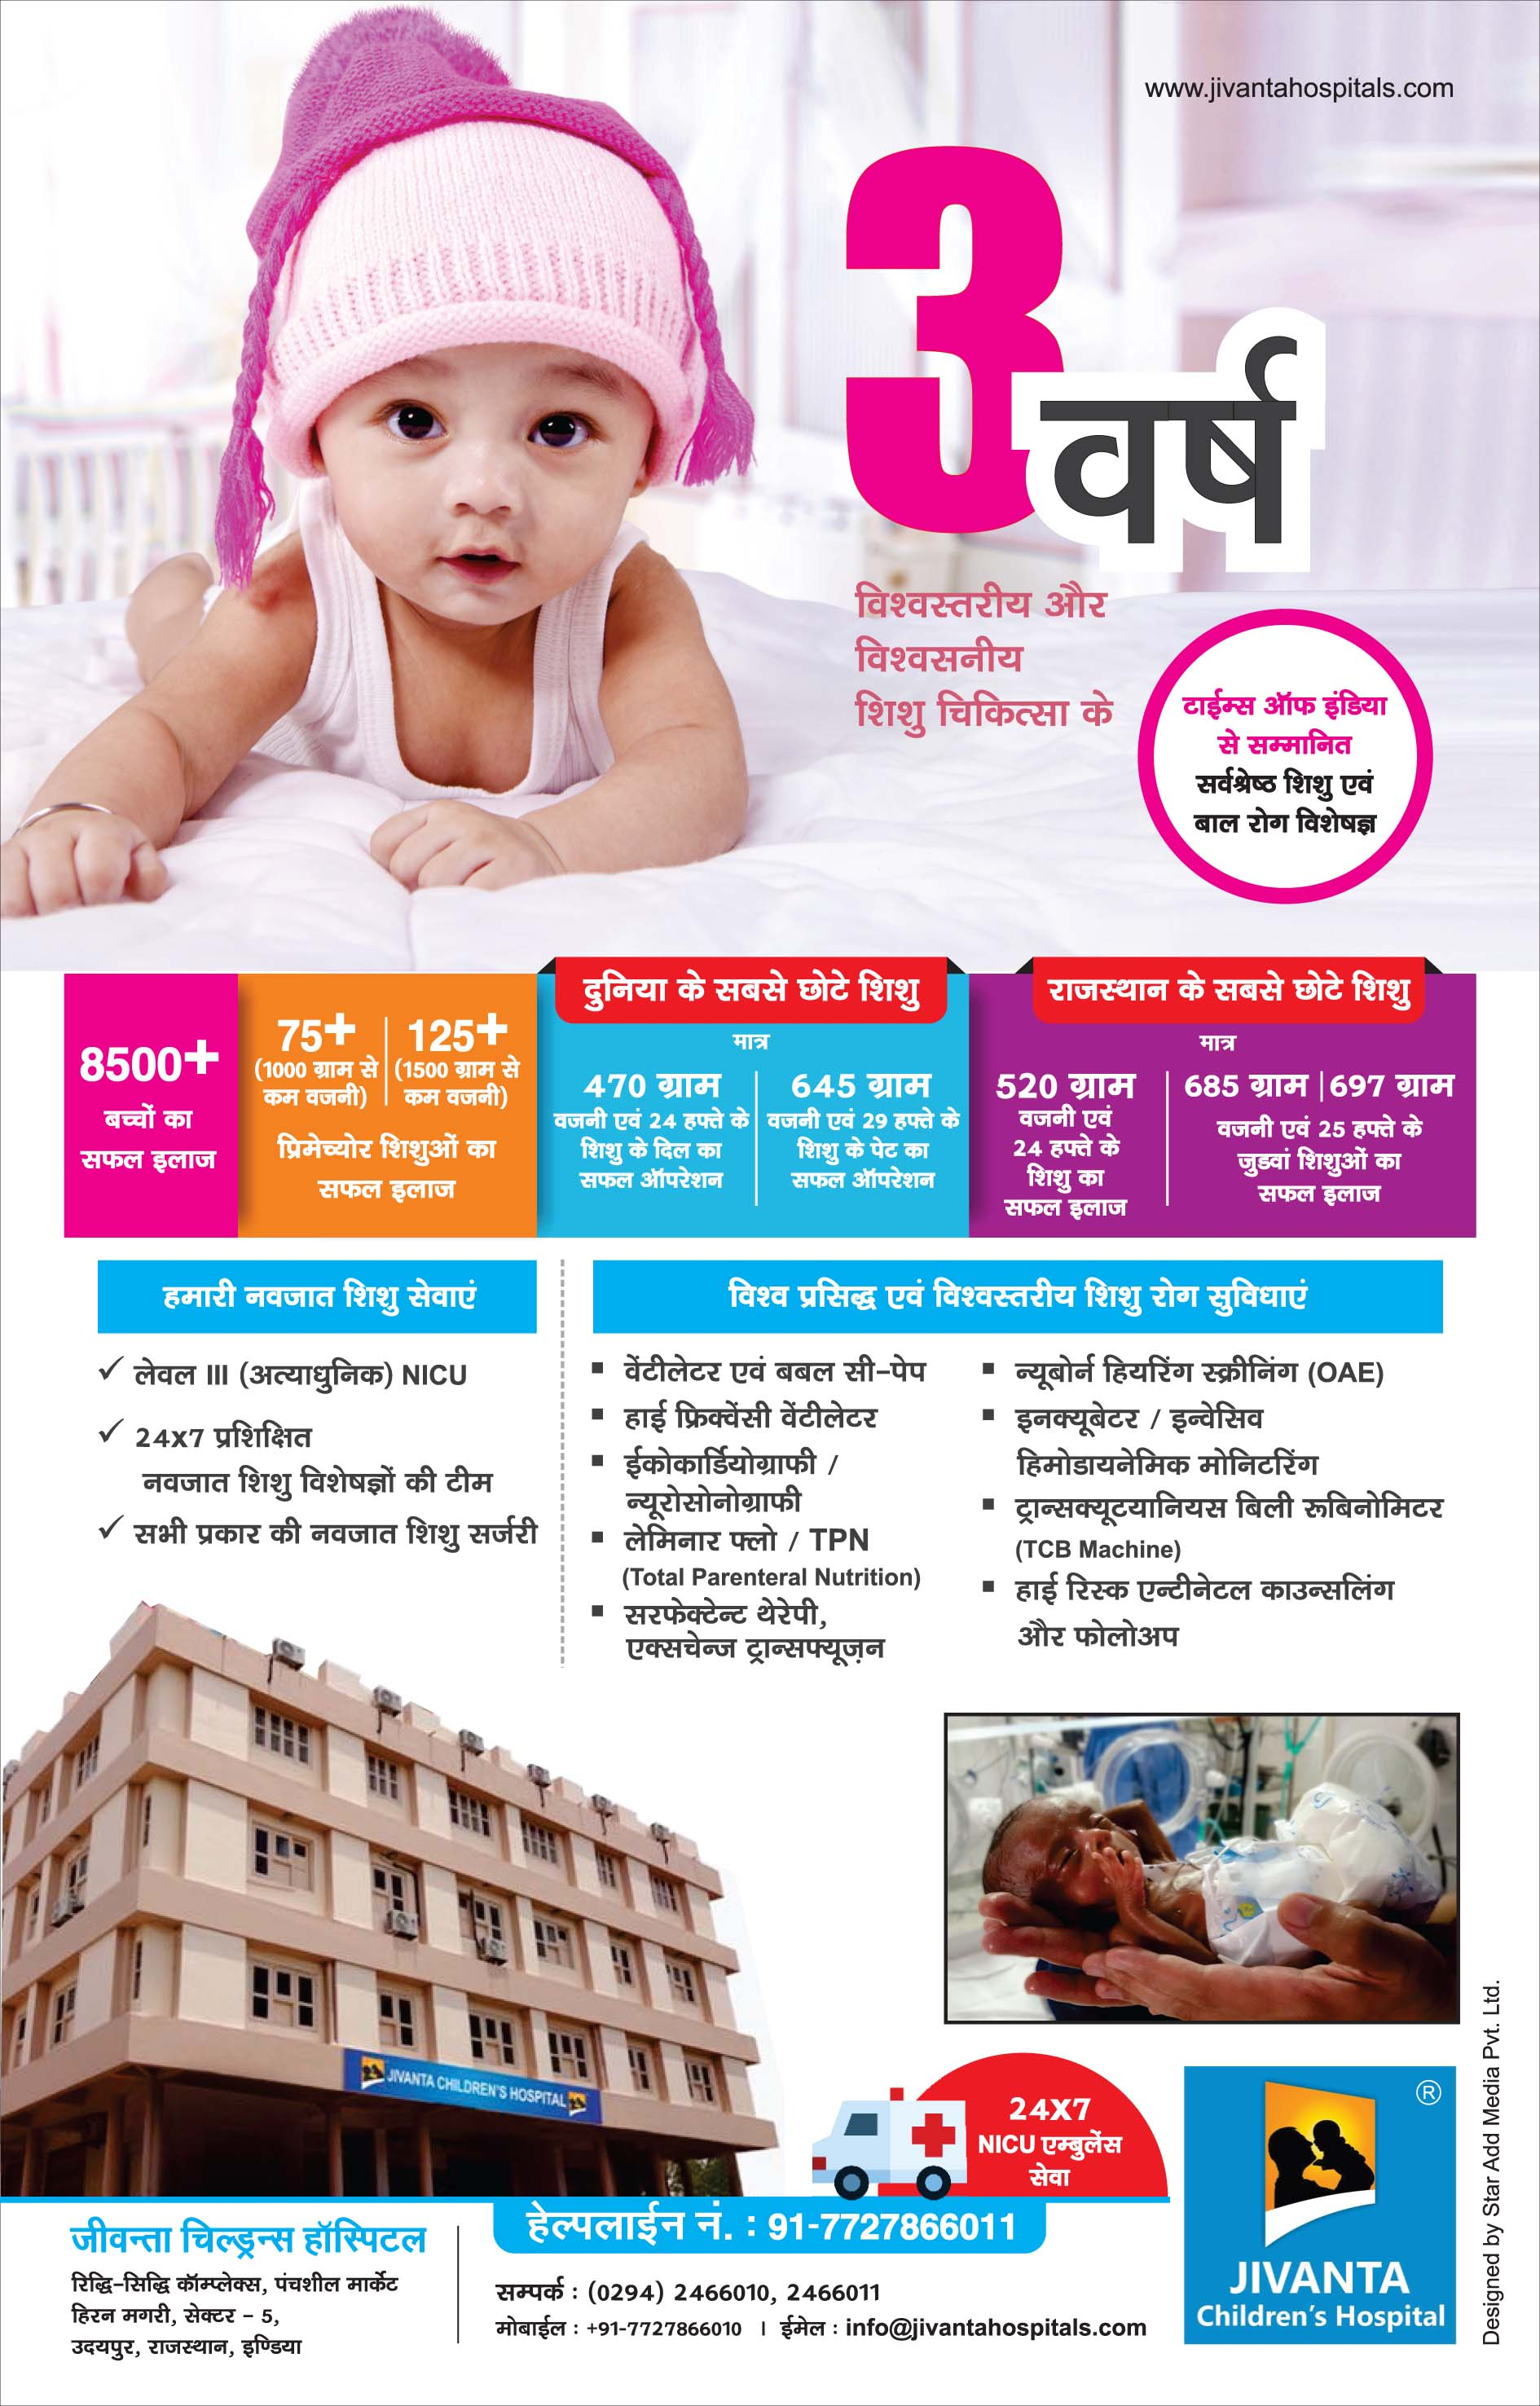 Jivanta Children's Hospital